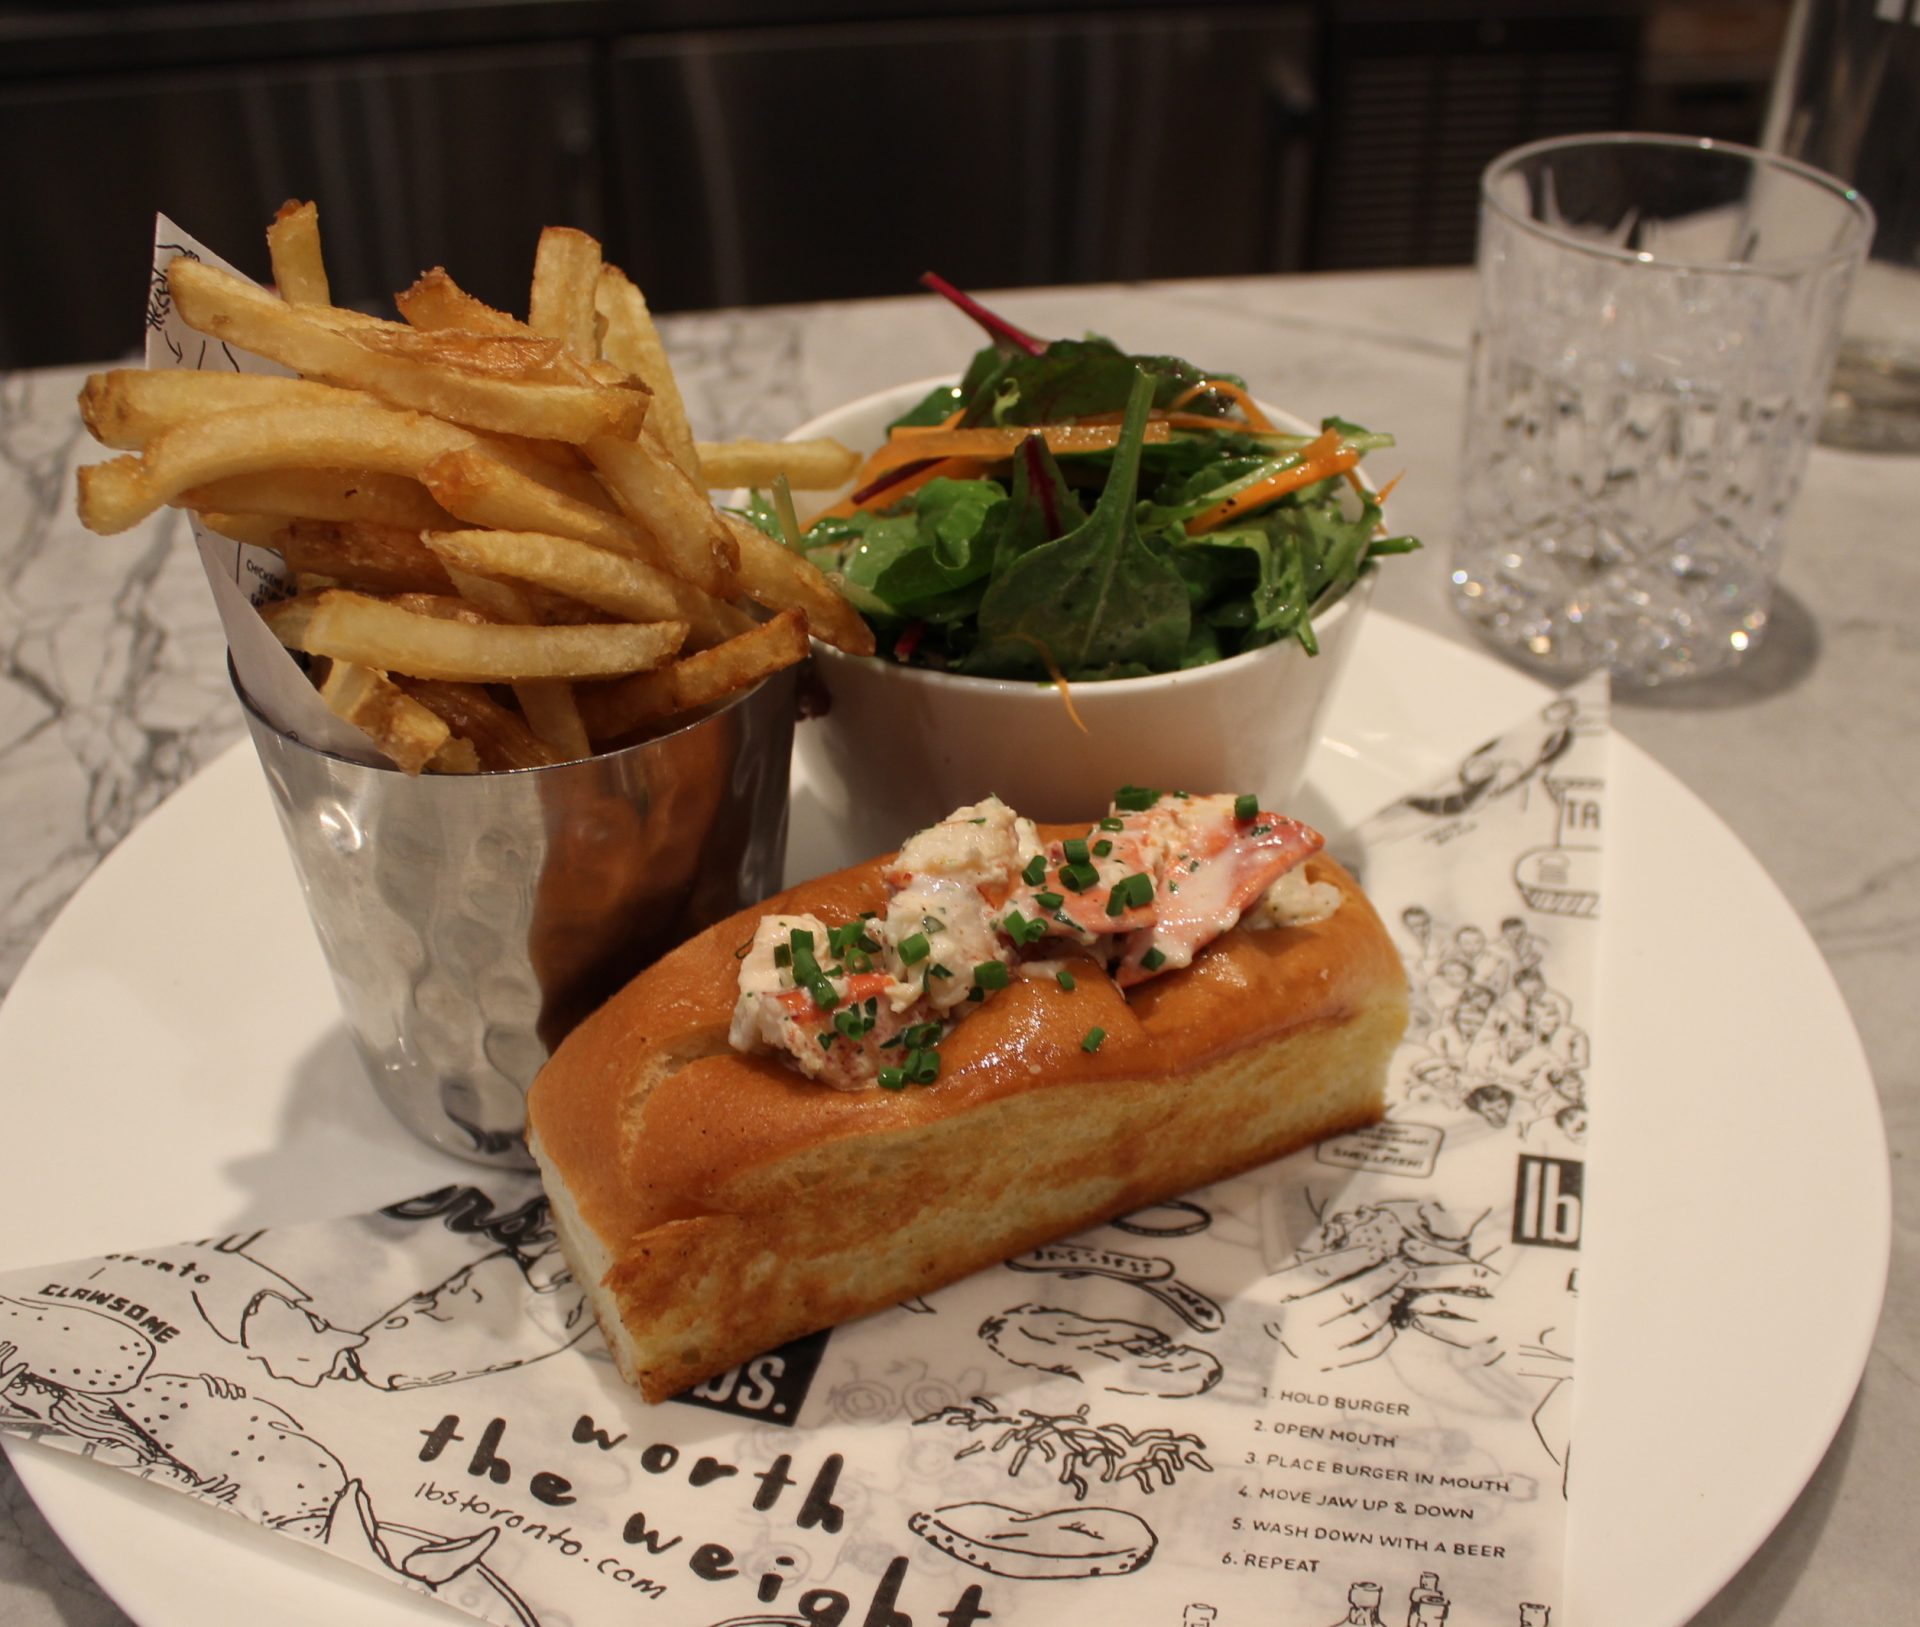 lobster-roll-at-lbs-toronto